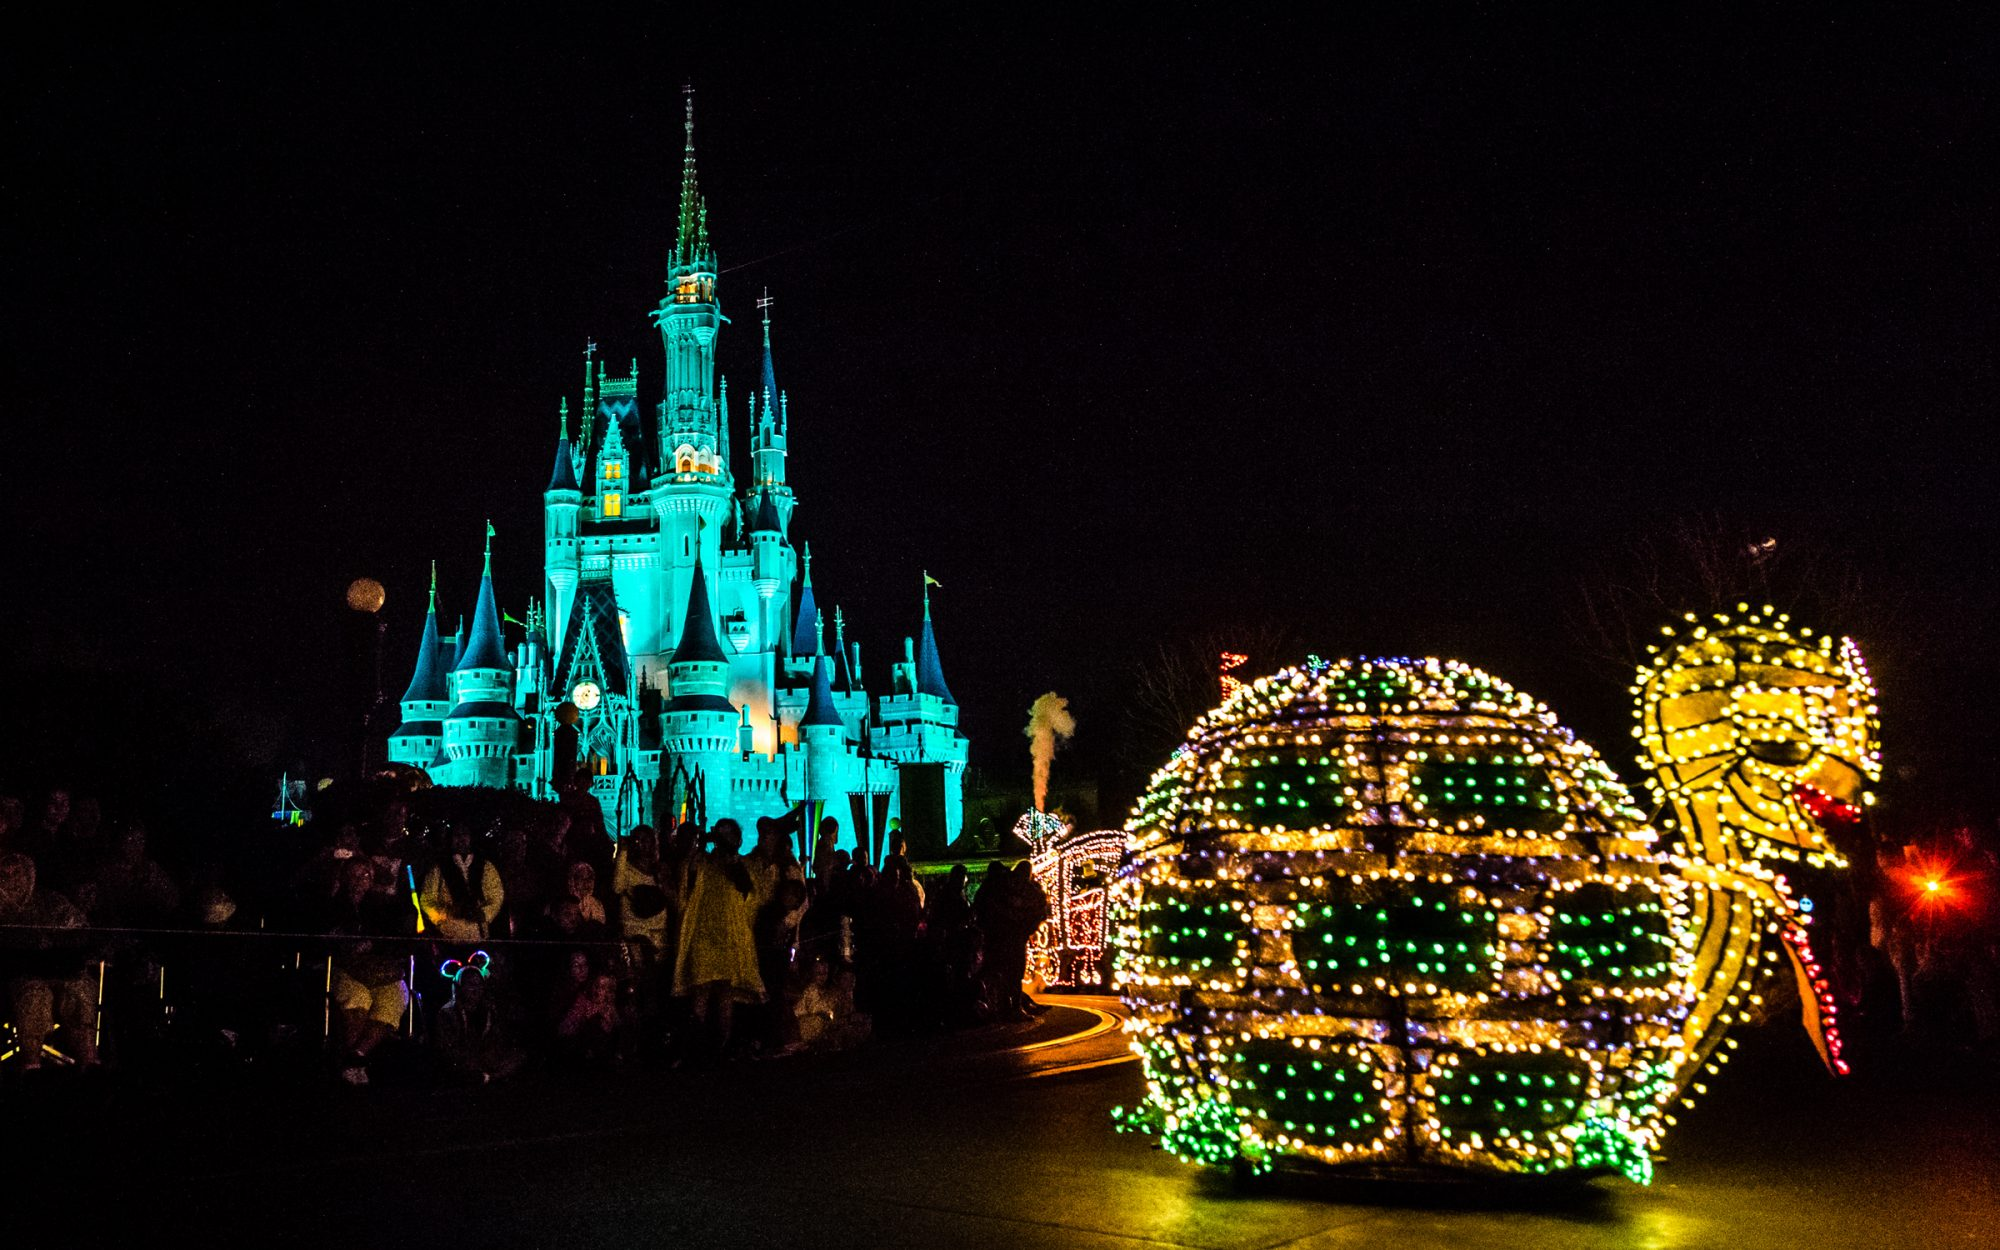 Disney World pulling the plug on Main Street Electrical Parade